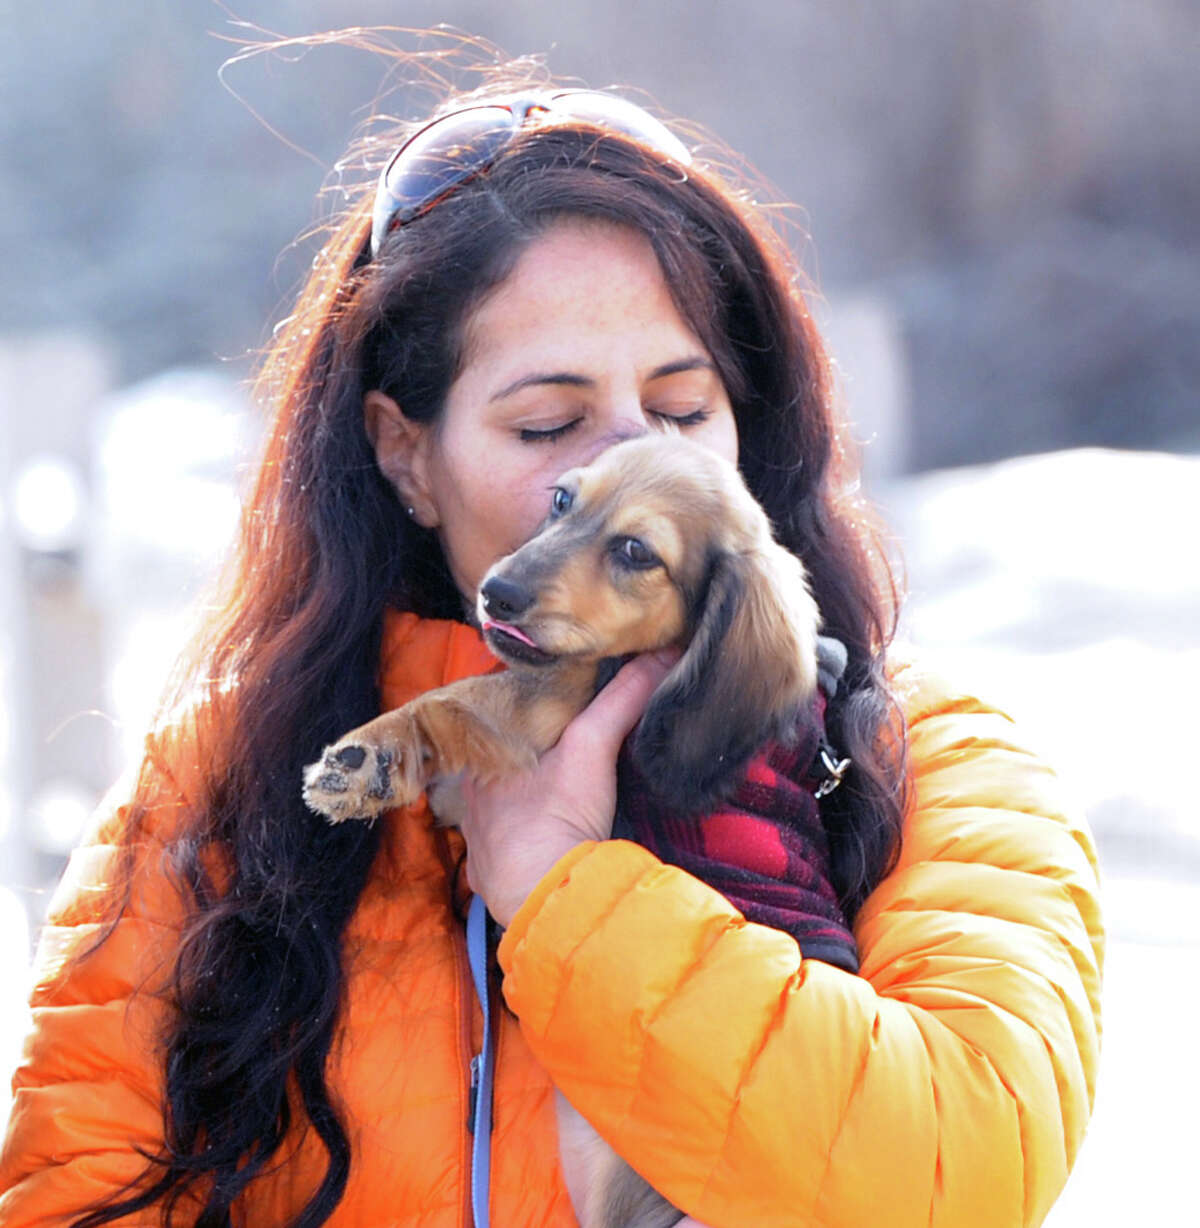 With the temperature reading 58 degrees on the first day of winter, the shortest day of the year, Maria Scrivan of Greenwich, nuzzles her nose against the ear of her Miniature long hair Dachshund, Toby, at Greenwich Point, Saturday, Dec. 21, 2013.